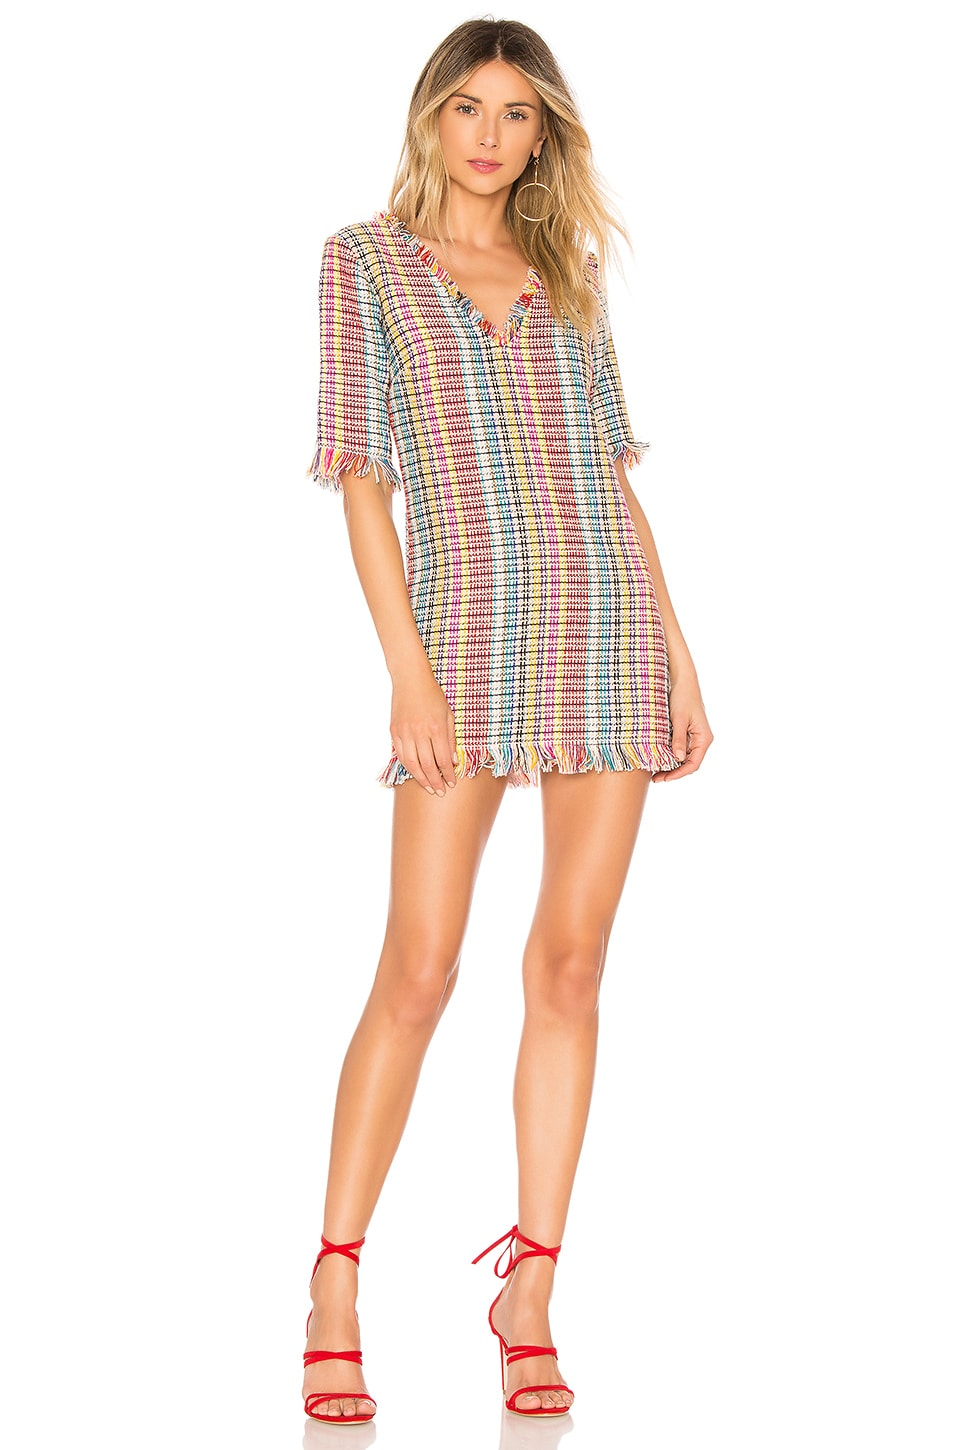 House of Harlow 1960 x REVOLVE Parker Dress in Multi Stripe